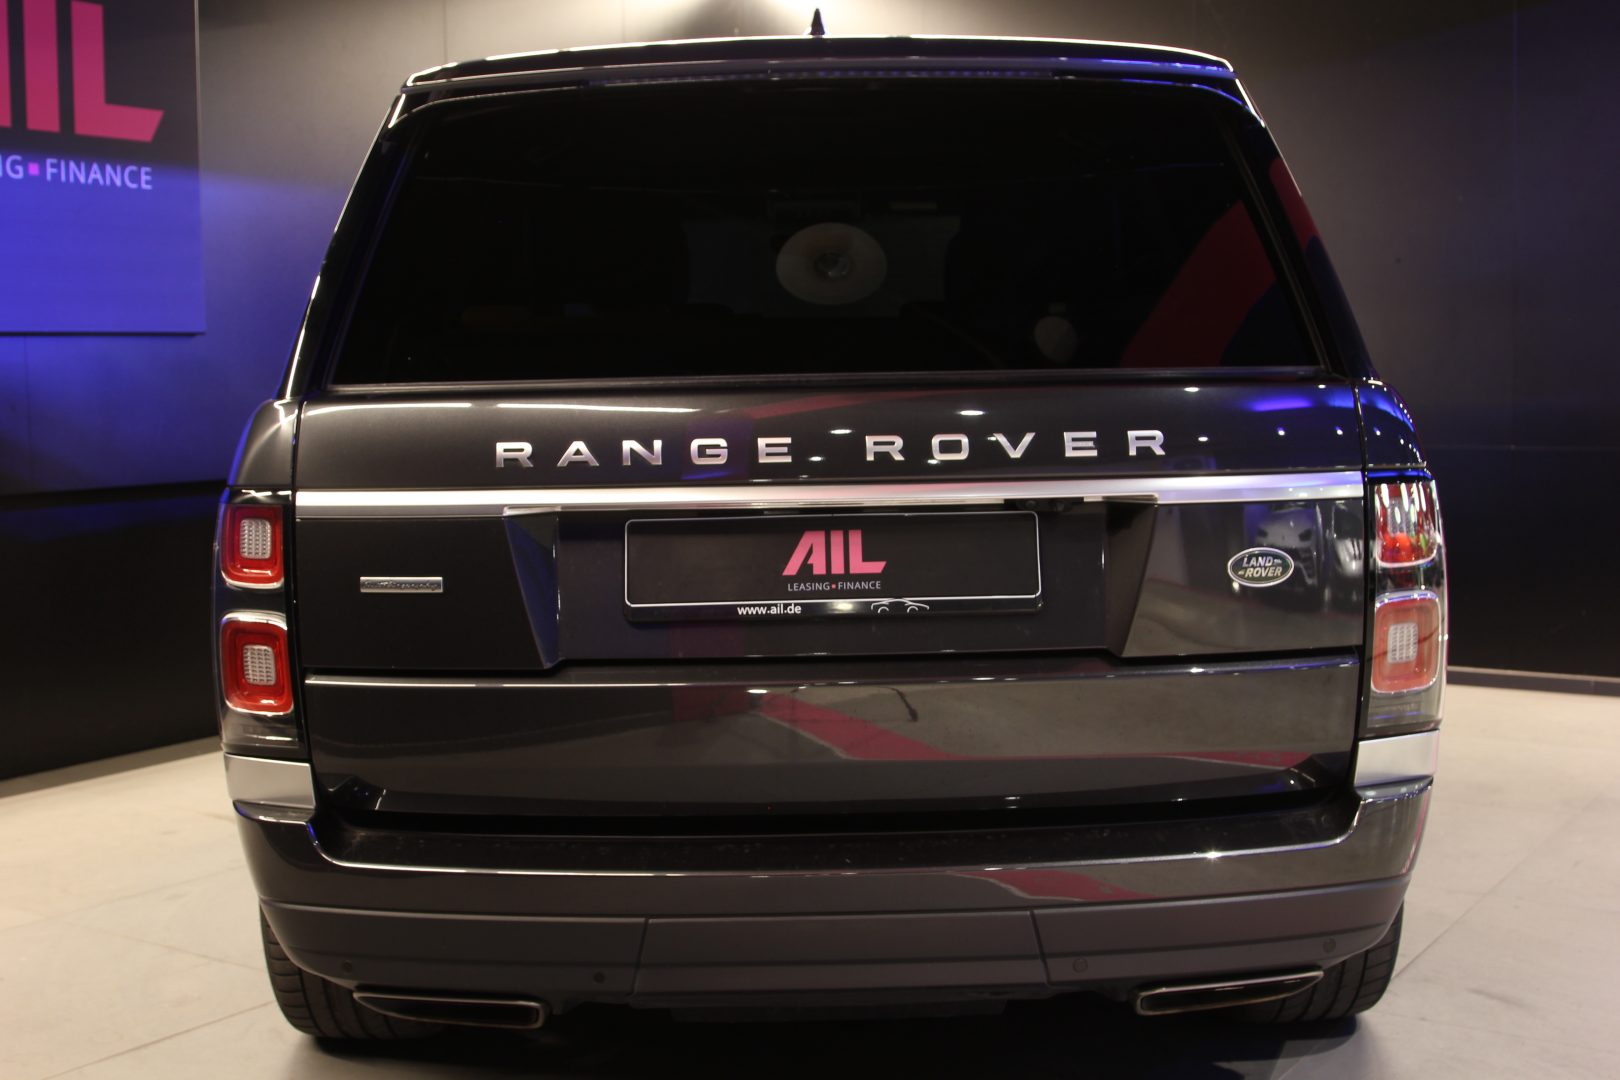 AIL Land Rover Range Rover SDV8 Autobiography 5